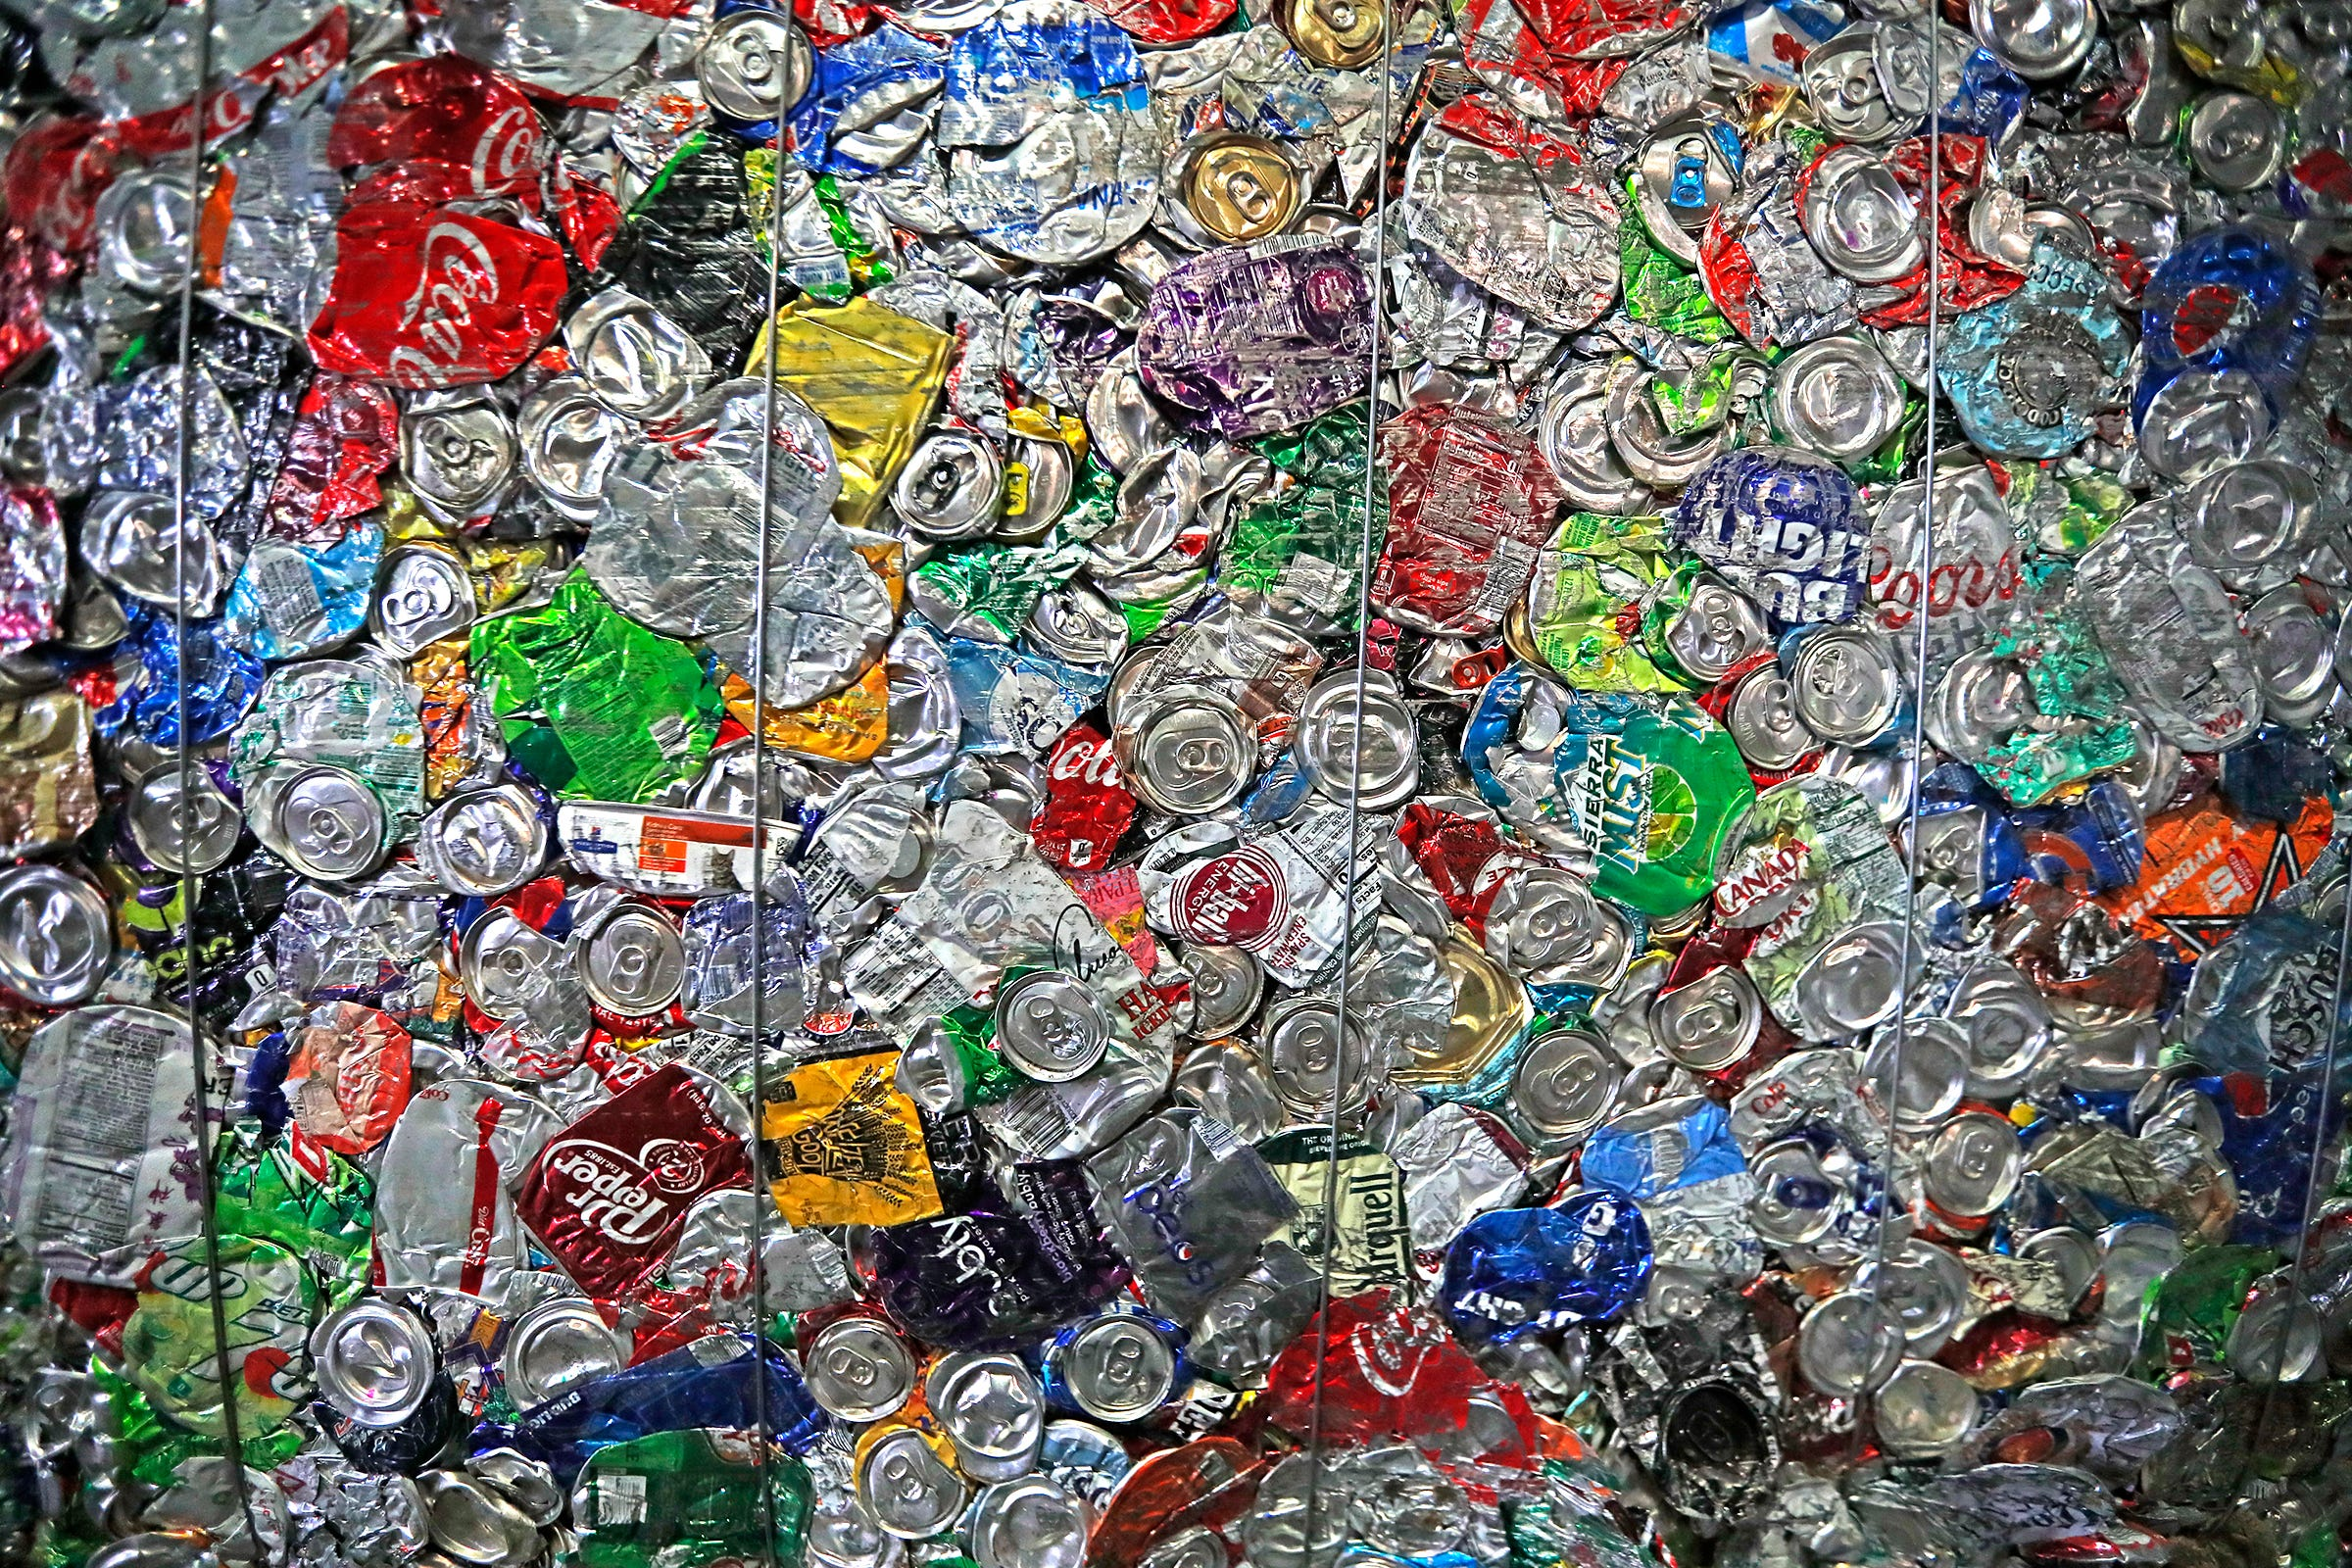 Flattened cans are bound together at the end of the recycling process at the Ray's Indianapolis Recycling Facility, part of Ray's Trash Service, Thursday, Sept. 3, 2020.